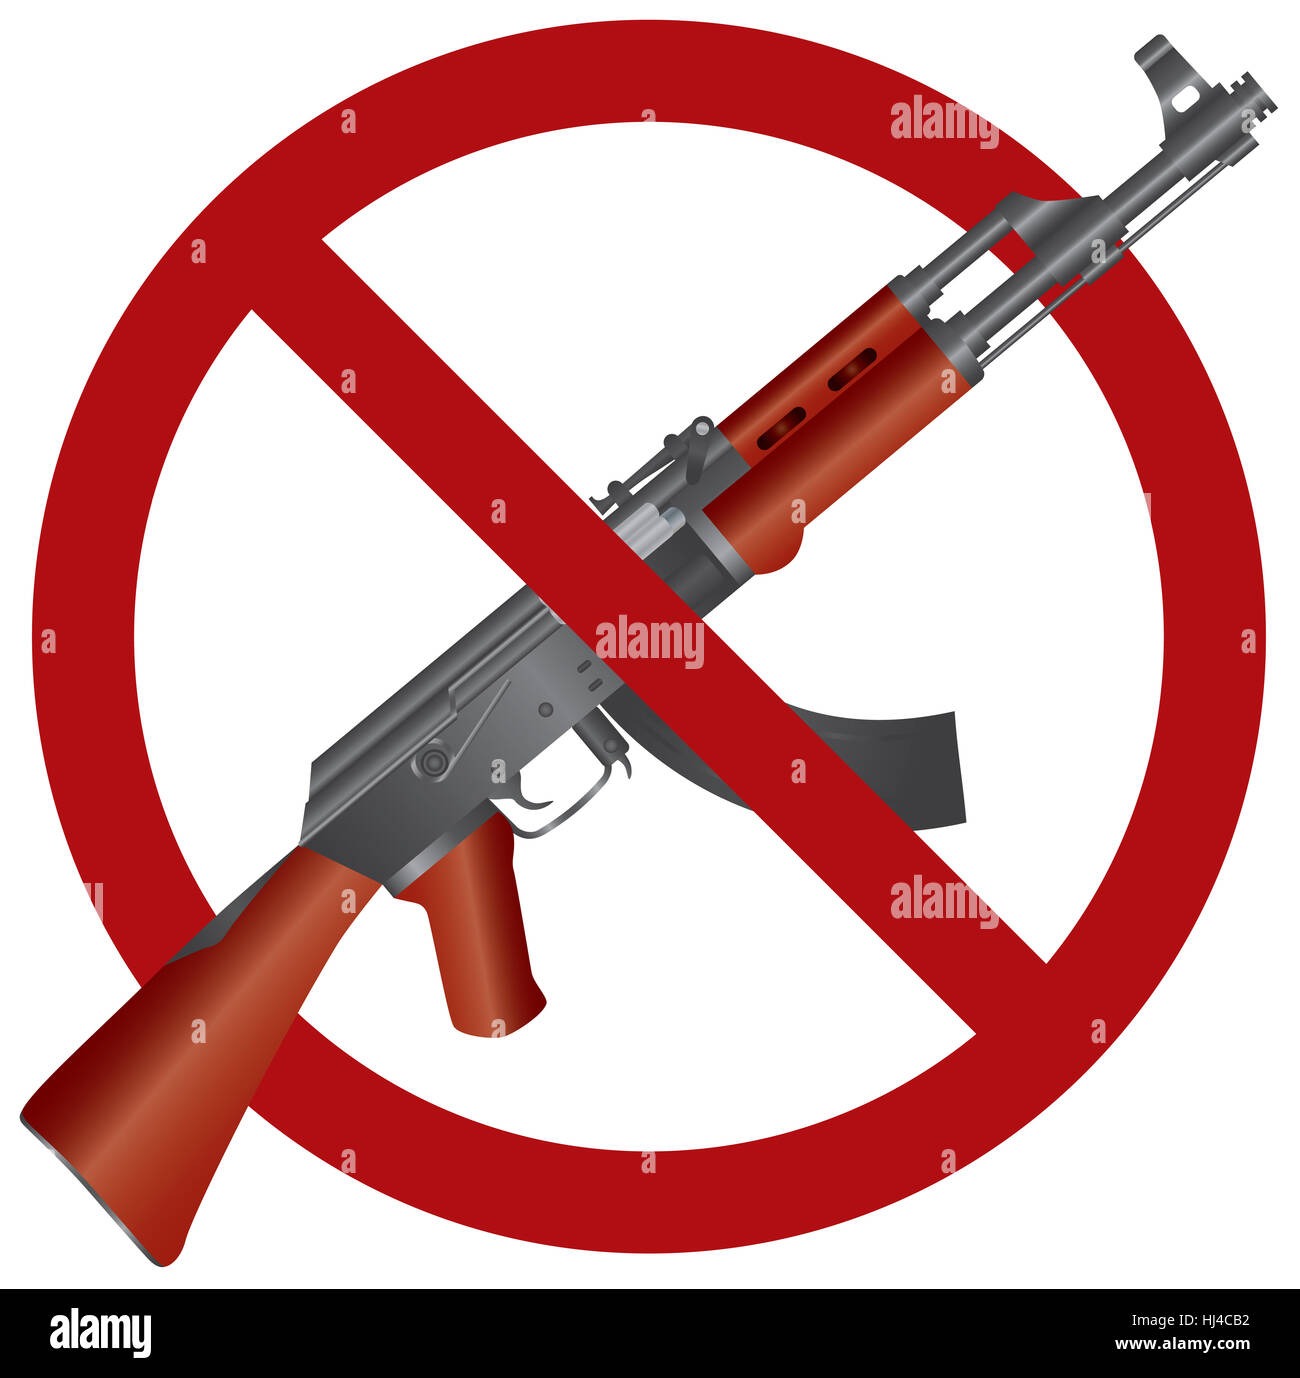 new, usa, law, rifle, arm, weapon, gun, firearm, ban, assault, humans, human - Stock Image